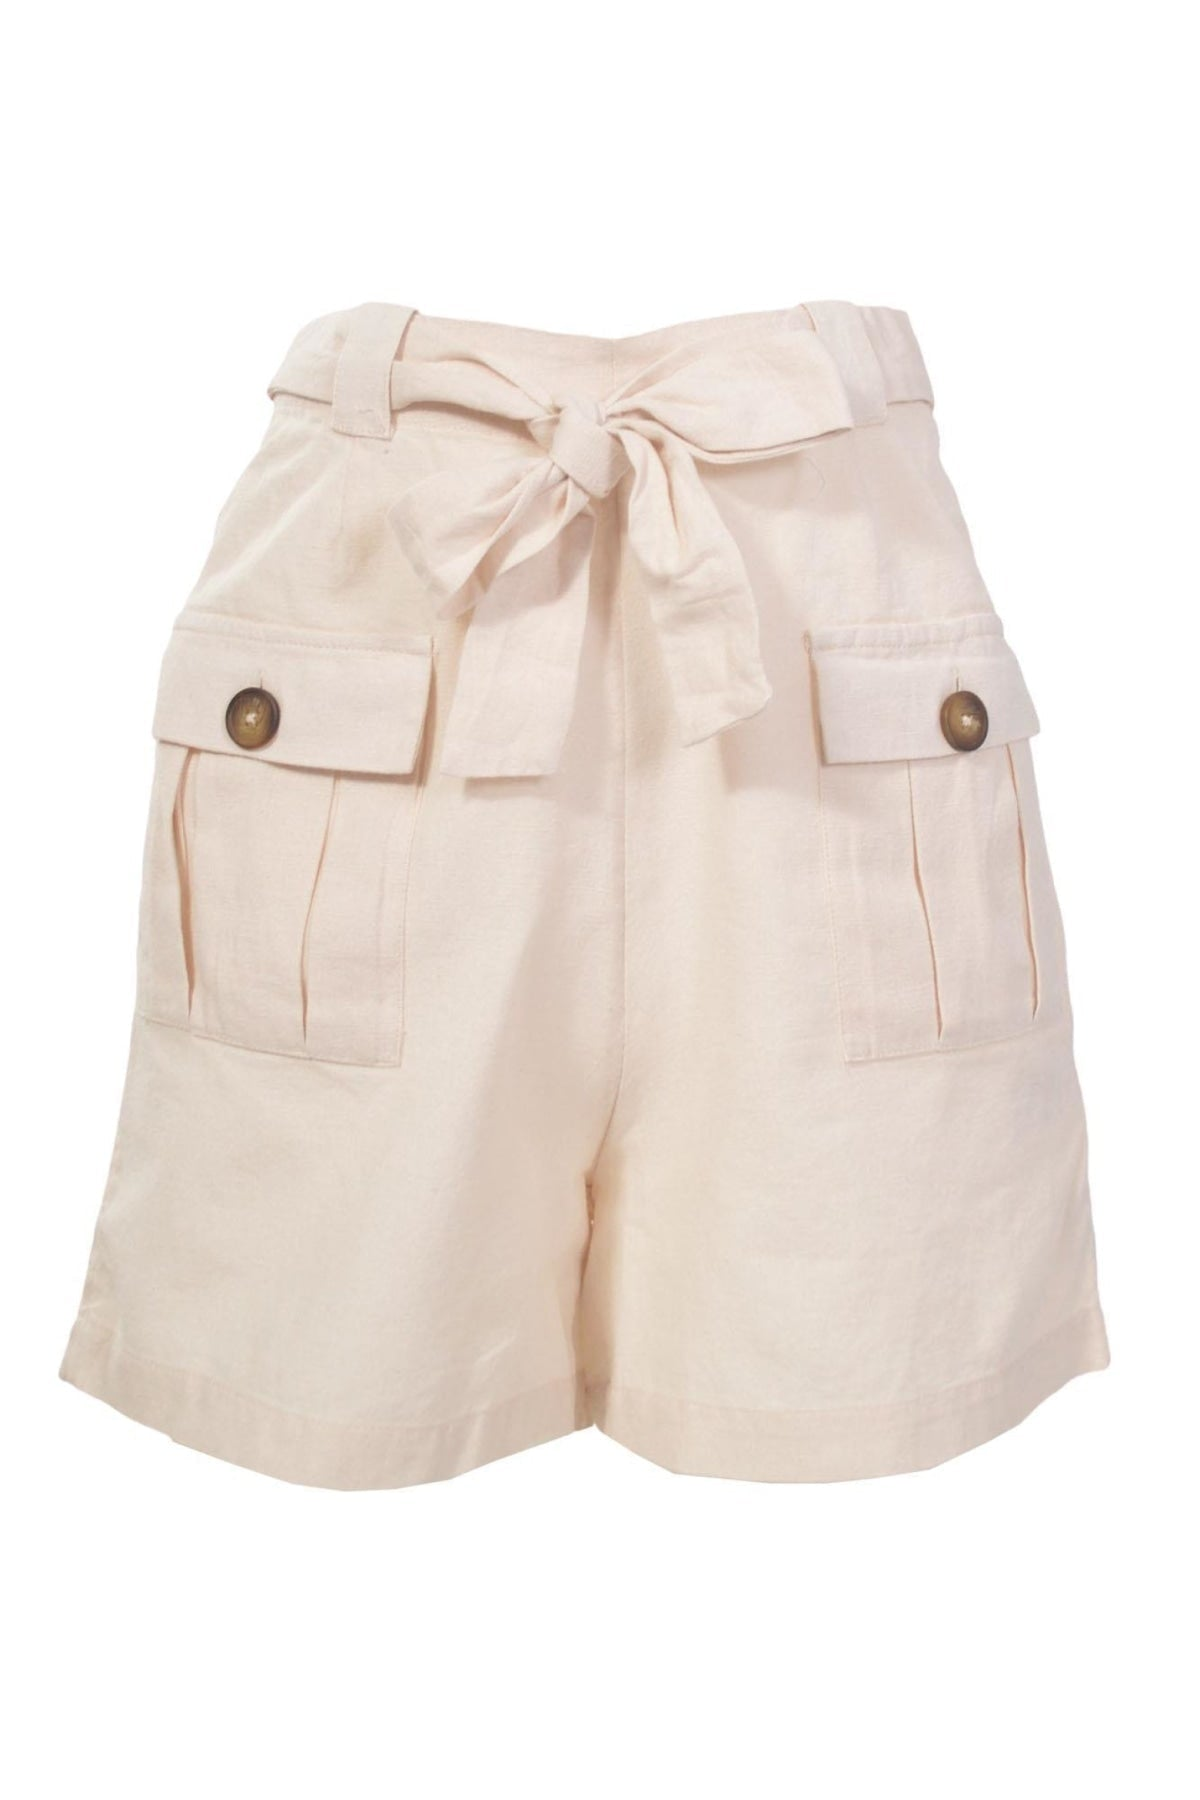 Warehouse Safari Shorts | 14 / Beige Secret Label